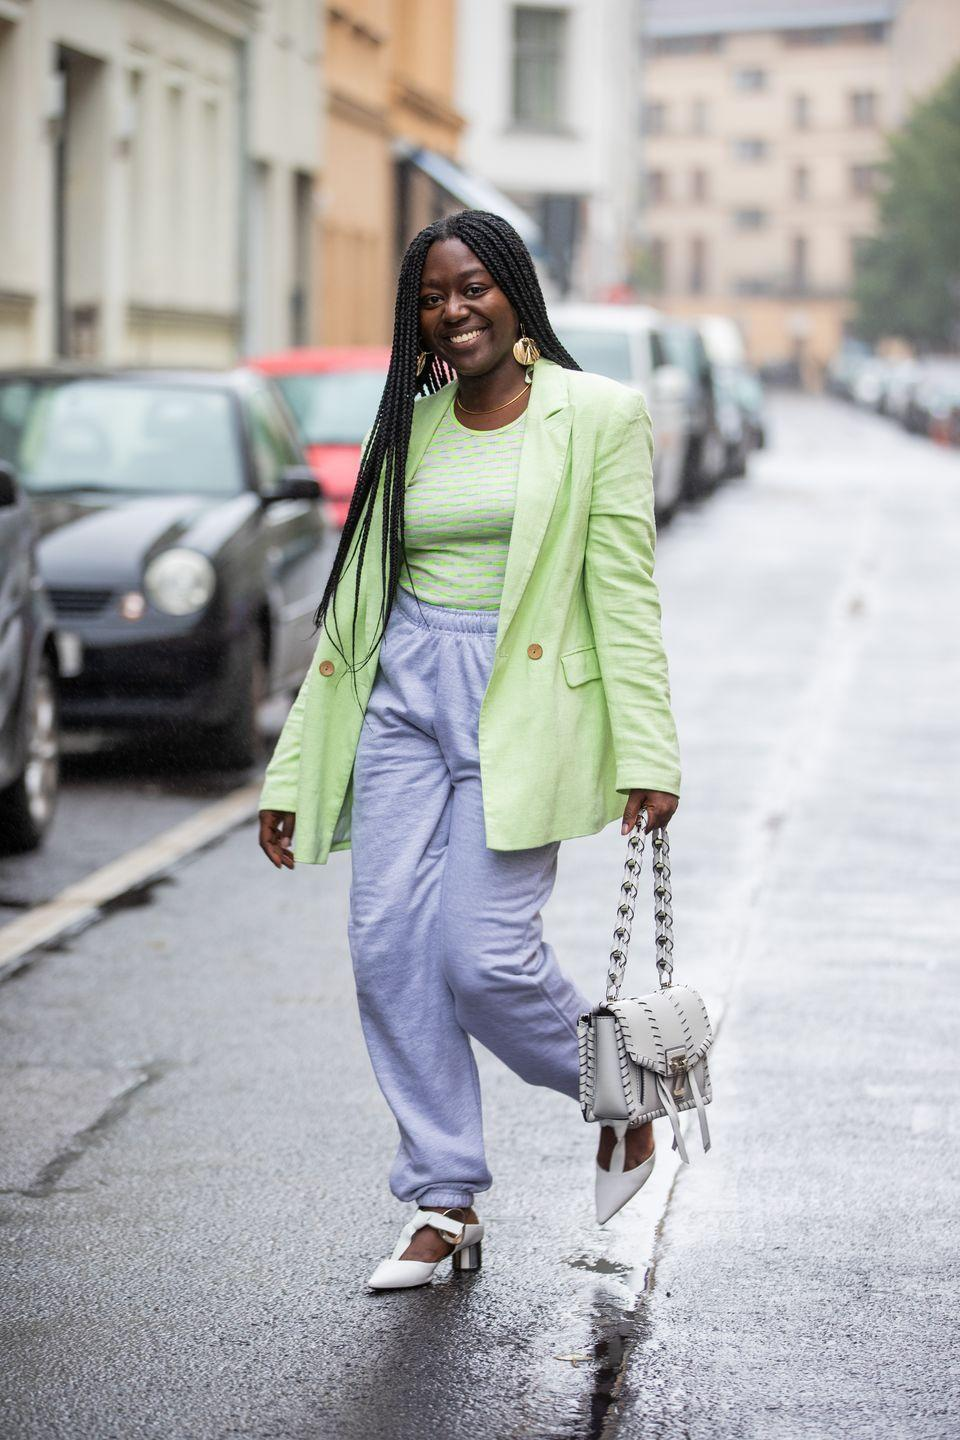 <p>The blazer is a classic transitional piece. The pale pastel green and gold jewellery paired with bright white handbag and mini heels, gives this a fresh spring look compared to the usual autumnal take on the item.</p>